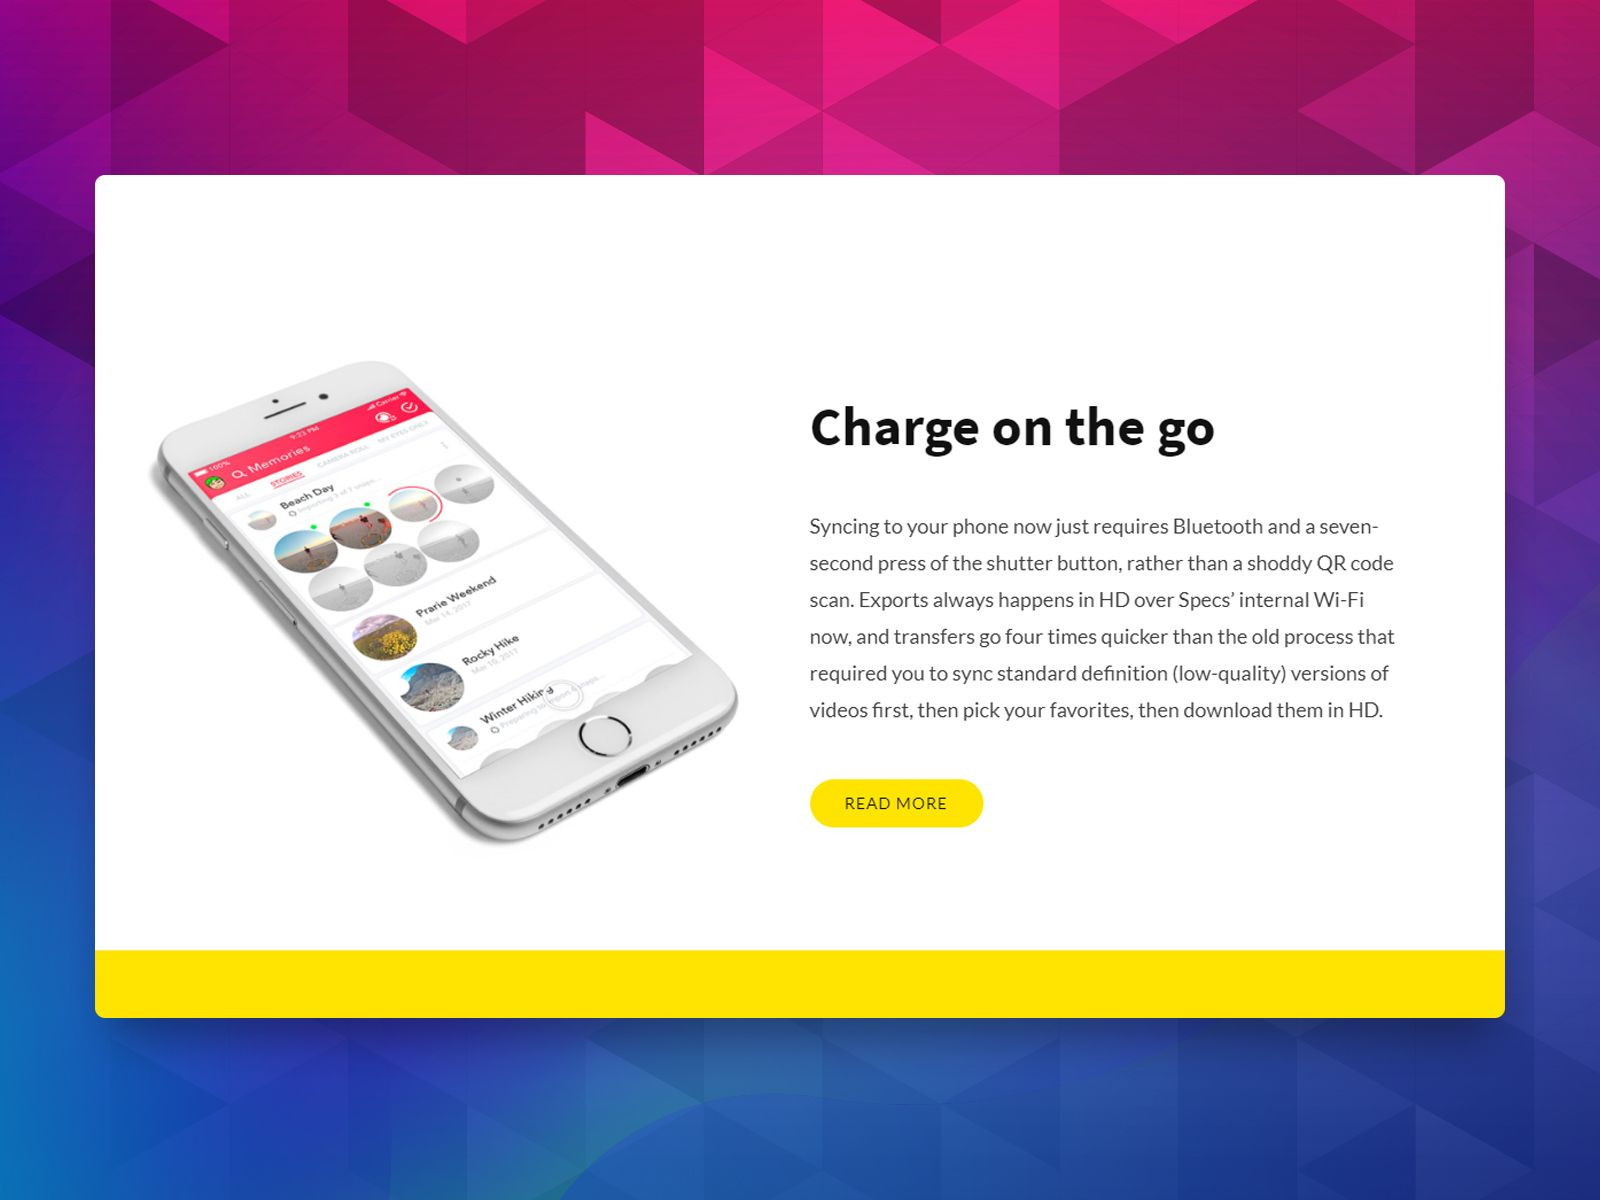 Nicepage Is A New Powerful Web Design Tool And An Easy To Use Builder For Your Websites Blogs And Themes Design W Web Design Tools Web Design Website Design